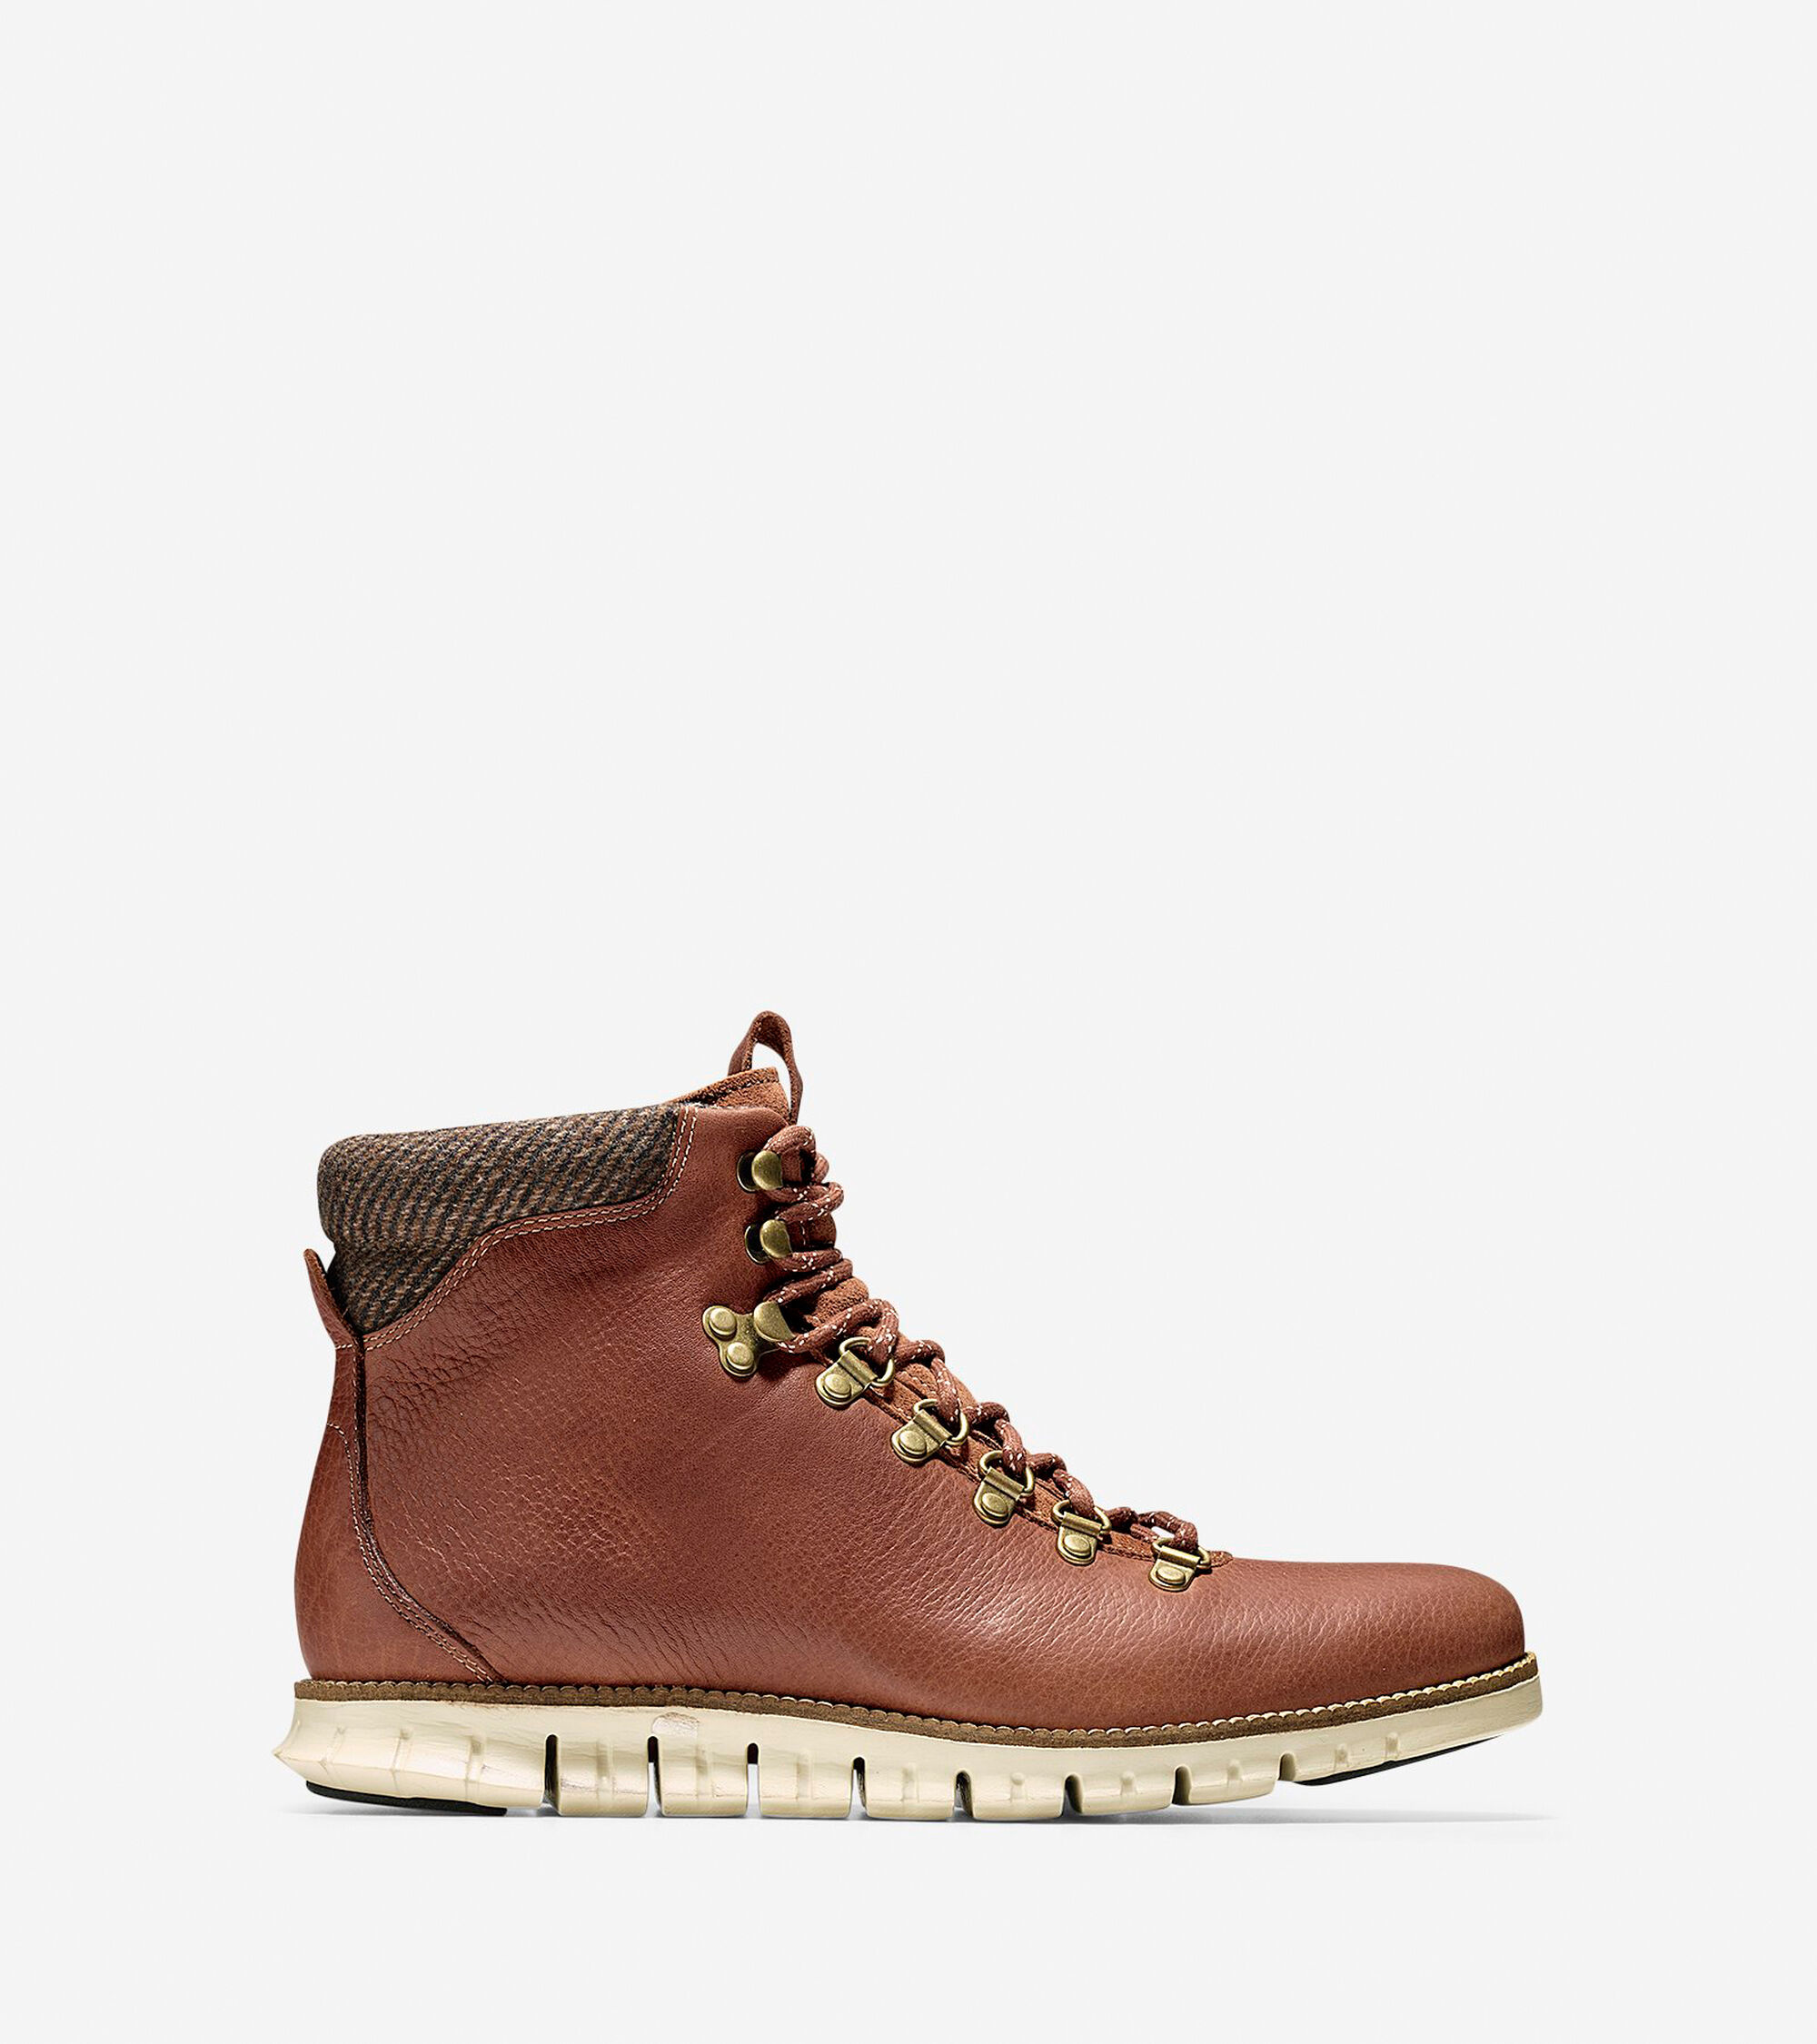 Shop for men's Cole Haan online at Men's Wearhouse. Browse the latest Shoes styles & selection for men from top brands & designers from the leader in men's apparel. Available in regular sizes and big & tall sizes. Enjoy FREE Shipping on orders over $50+!